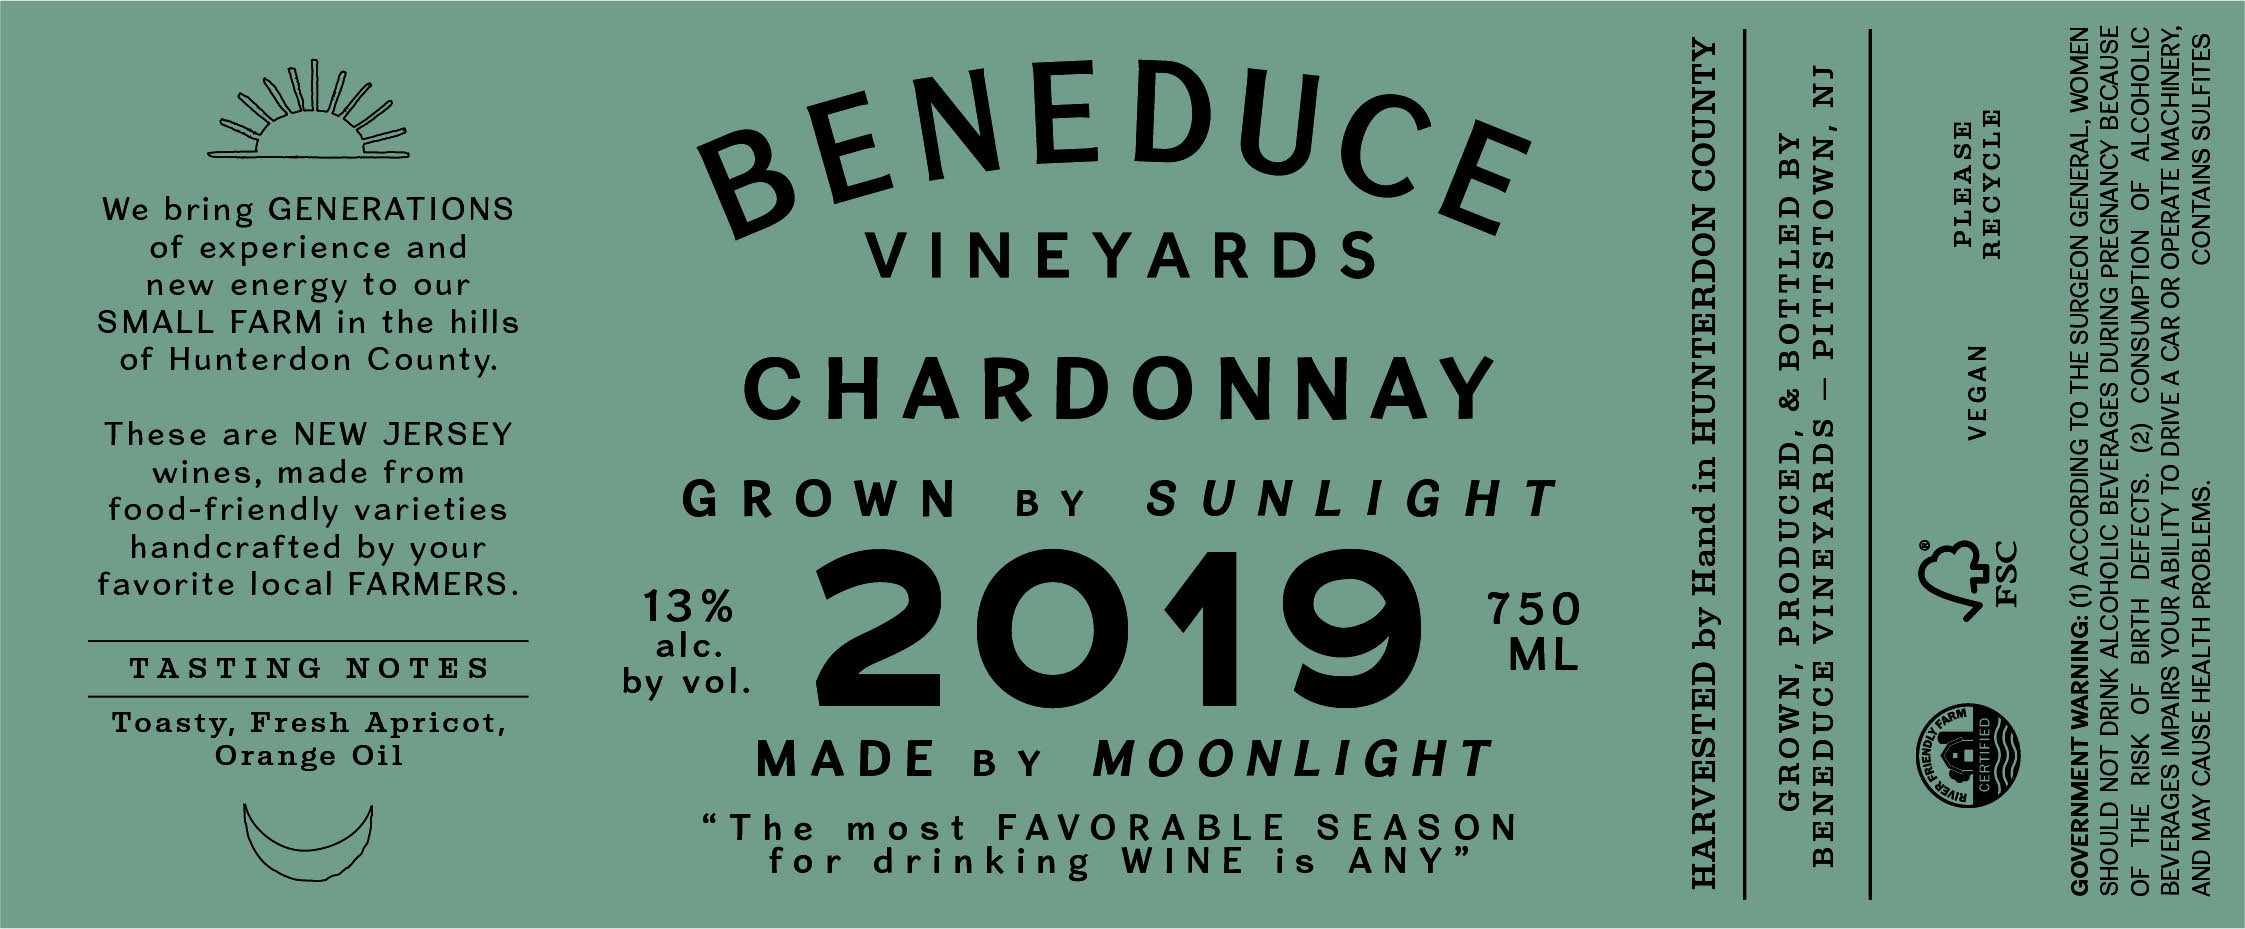 Product Image for 2019 Chardonnay